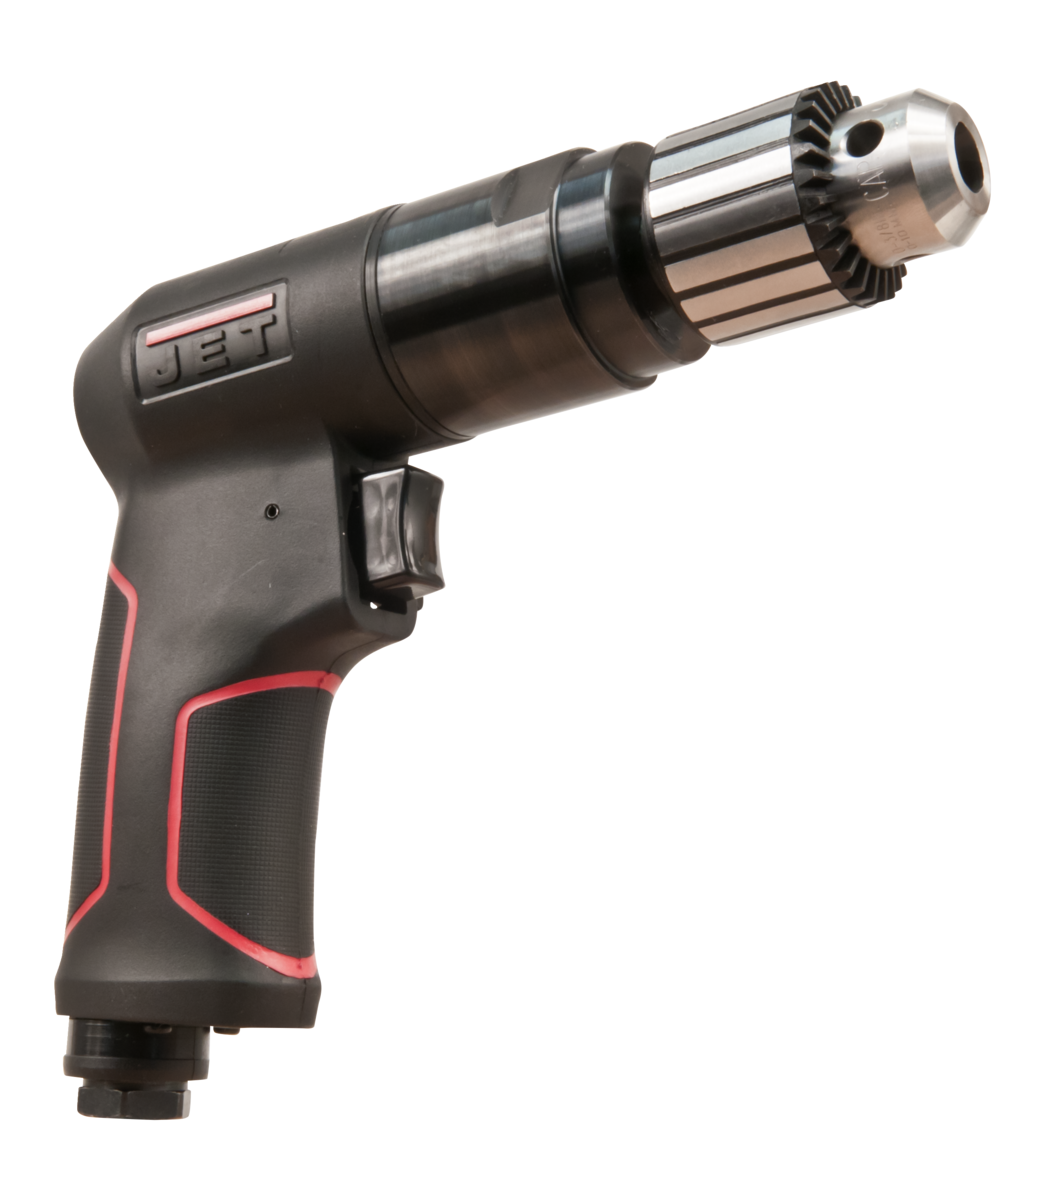 "JAT-620, 3/8"" Reversible Air Drill"